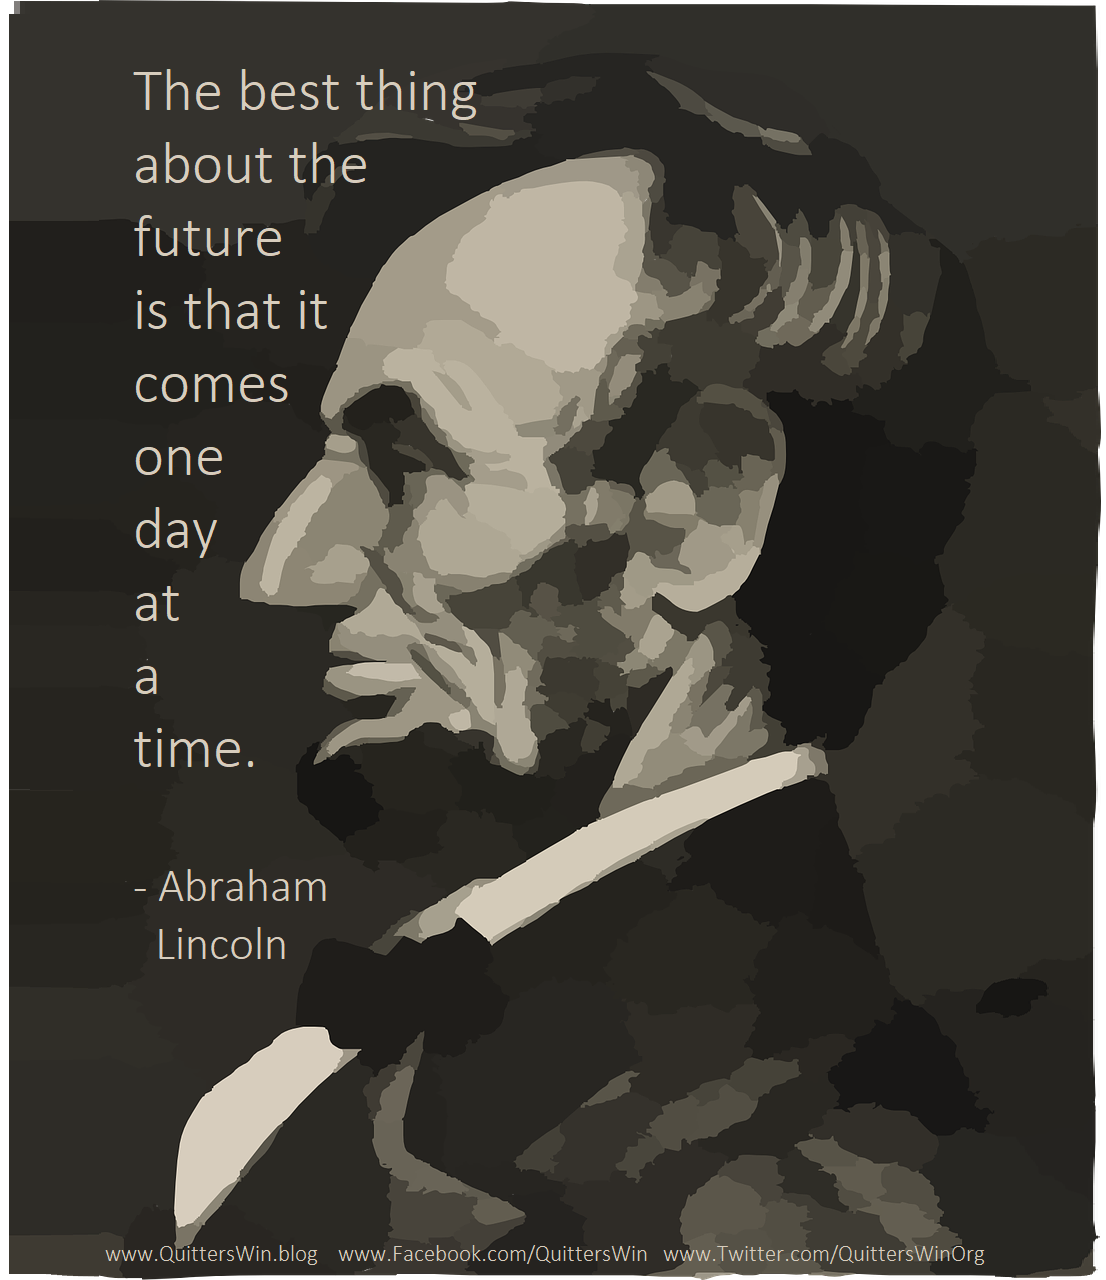 abraham-abe-lincoln-295313_1280.png